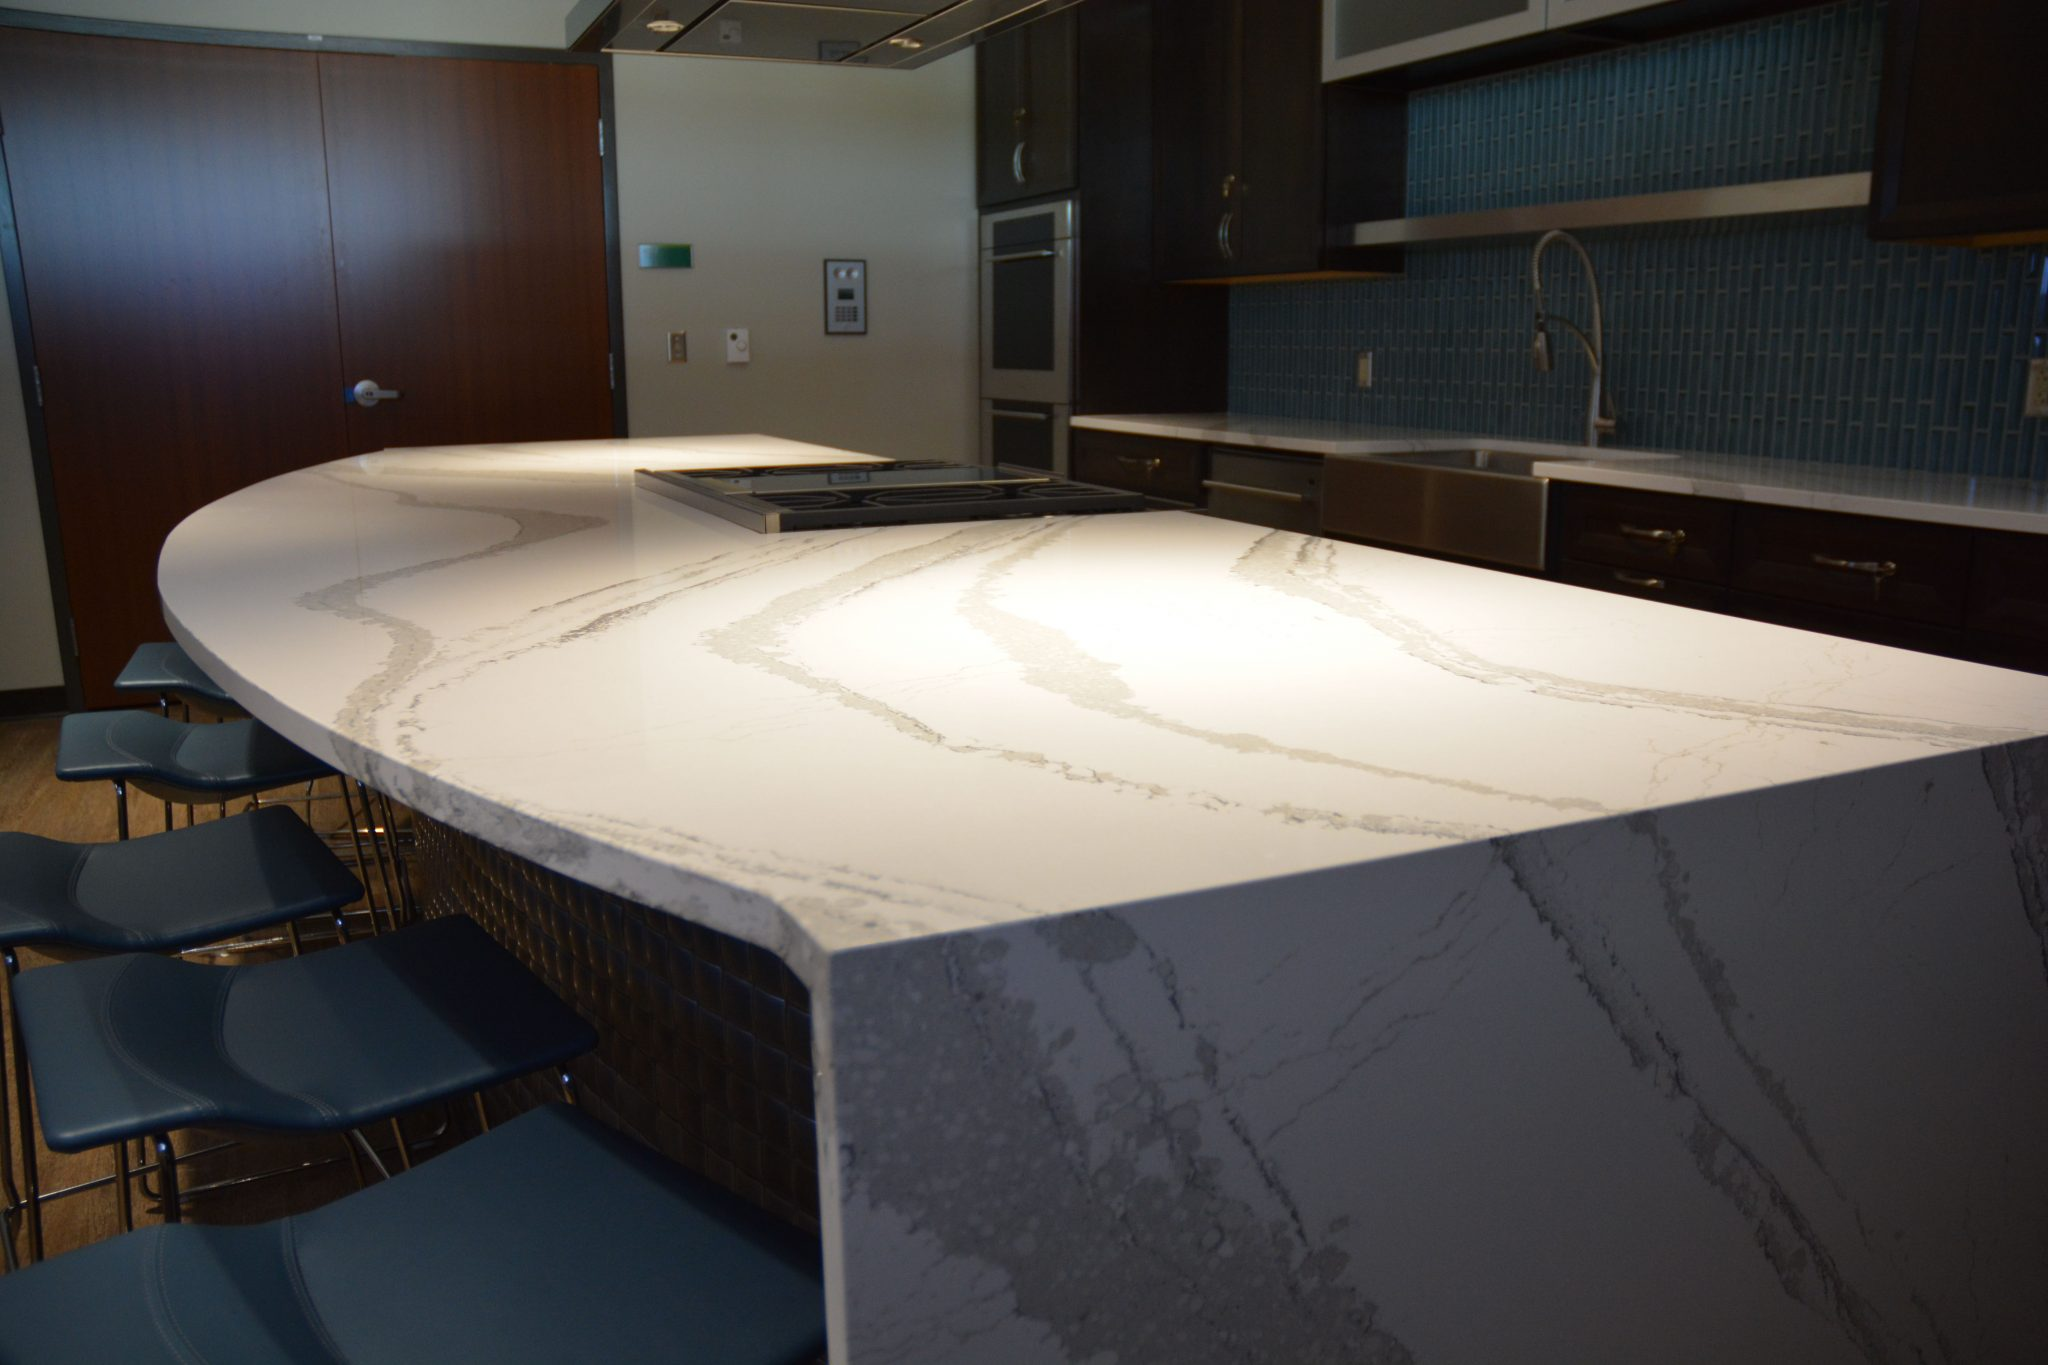 McDaniels Kitchen And Bath Offers A Complete Selection Of Countertops To  The Builder And Retail Markets. We Routinely Measure And Install  Countertops For ...